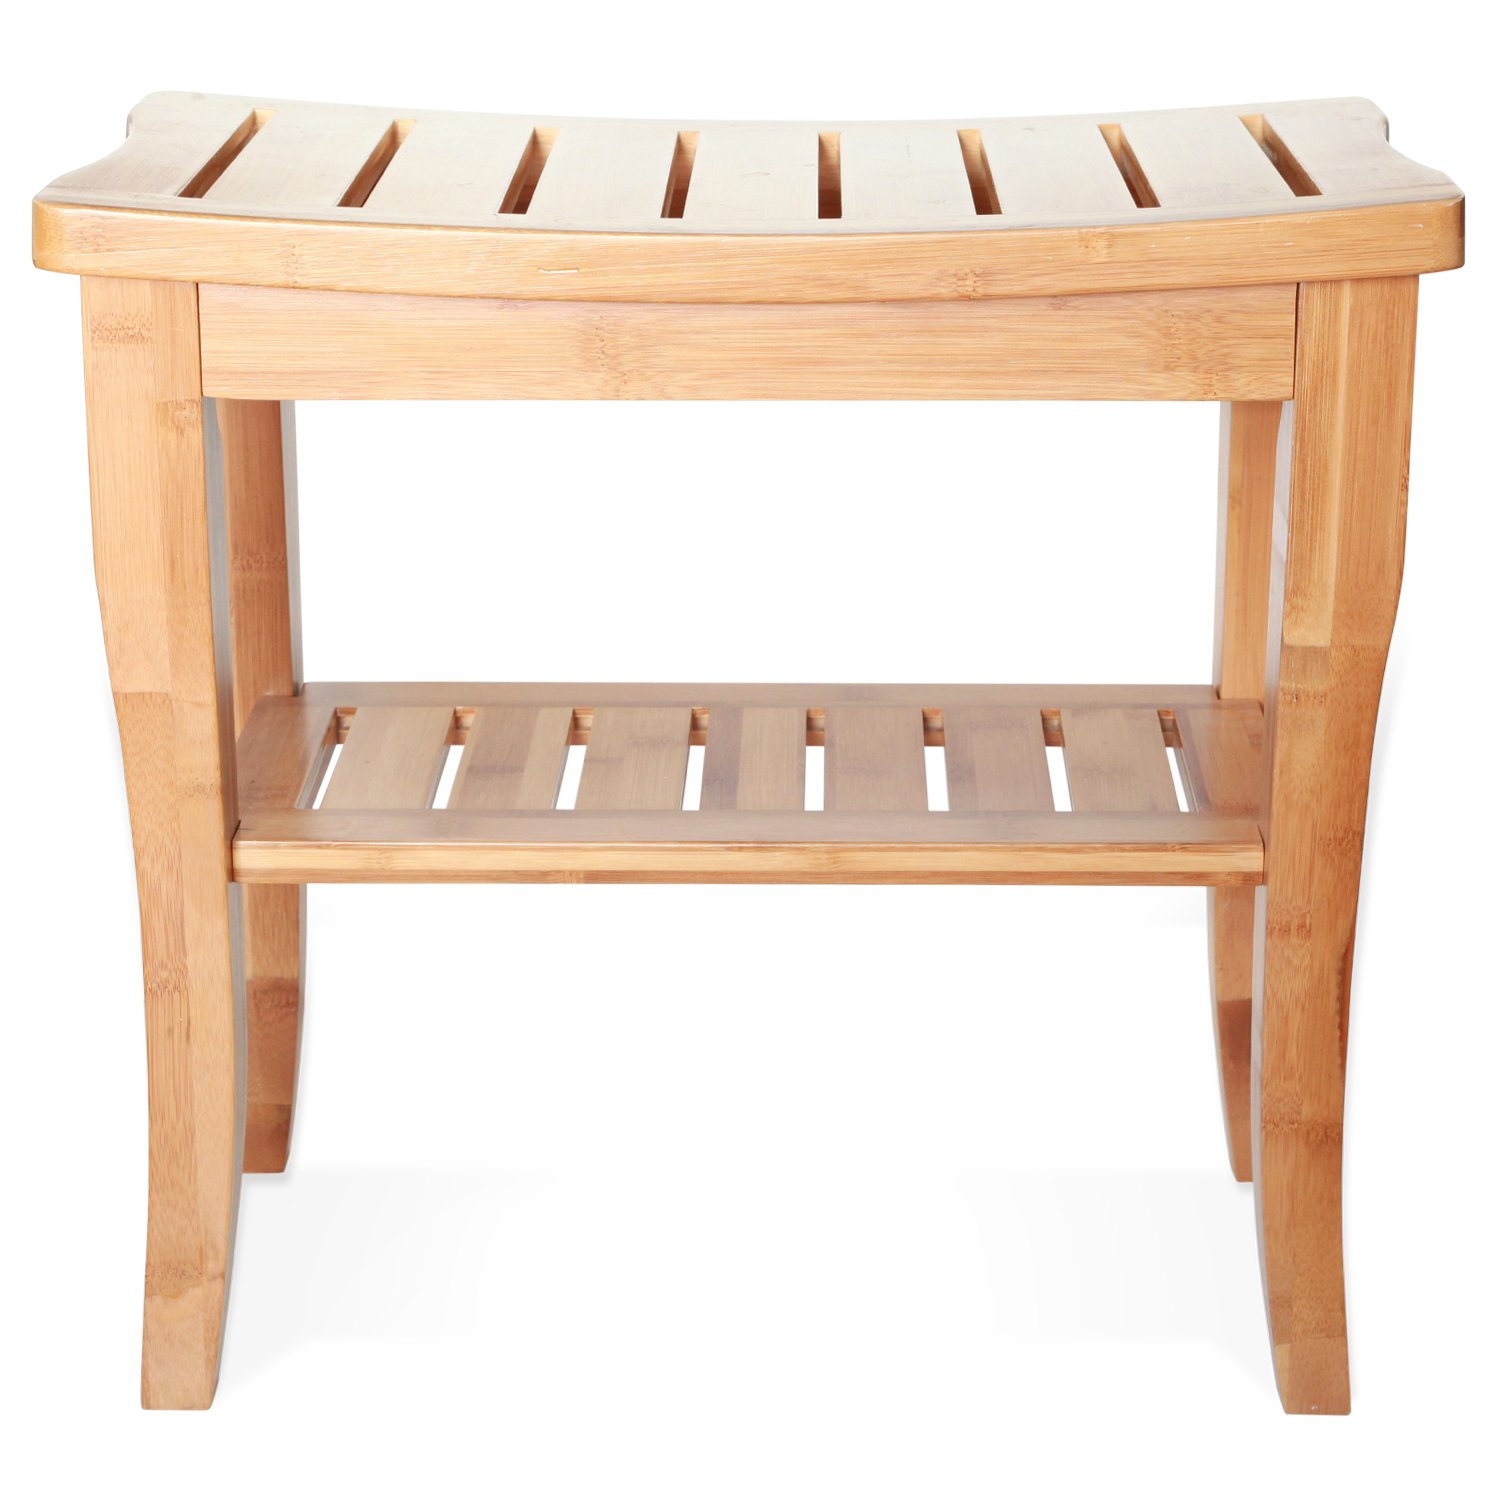 Amazon.com: Deluxe Bamboo Shower Seat Bench with Storage Shelf ...